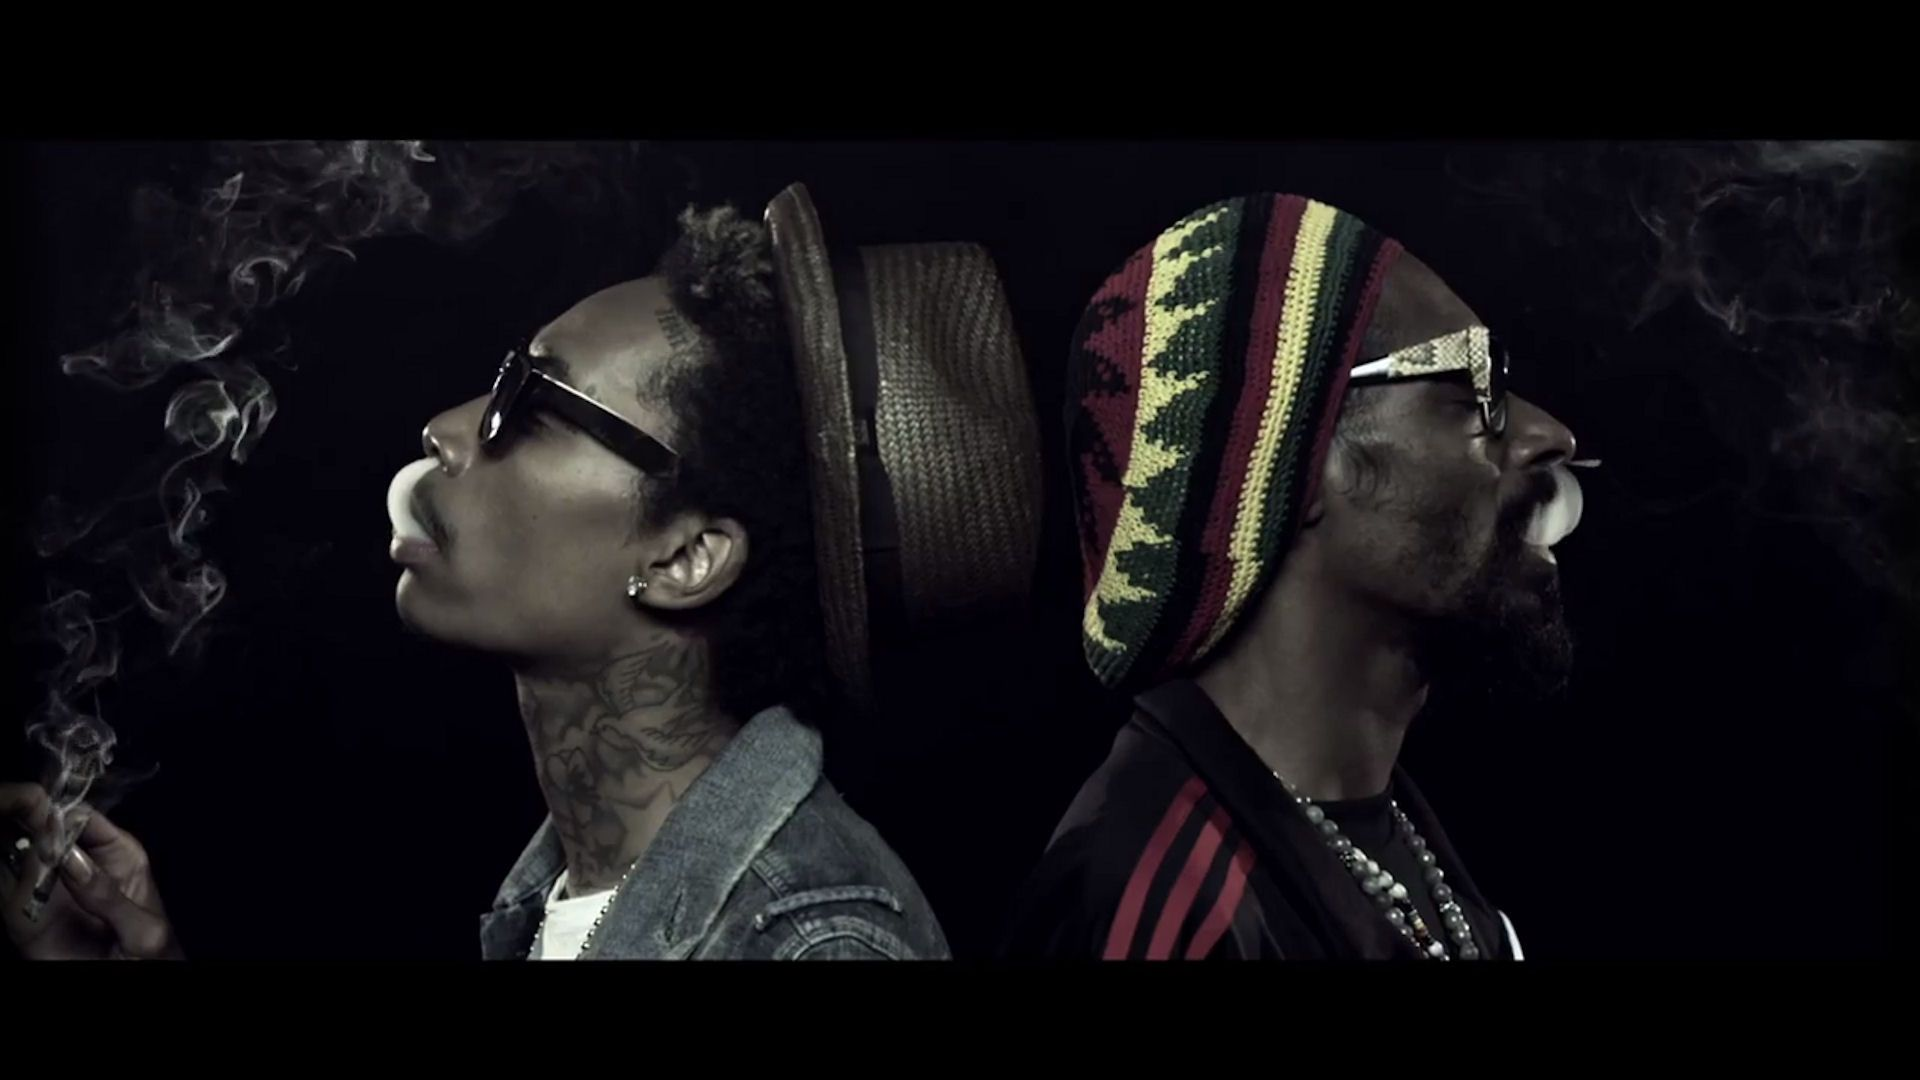 1920x1080 Full HD p Wiz khalifa Wallpapers HD Desktop Backgrounds | wallpapers ...